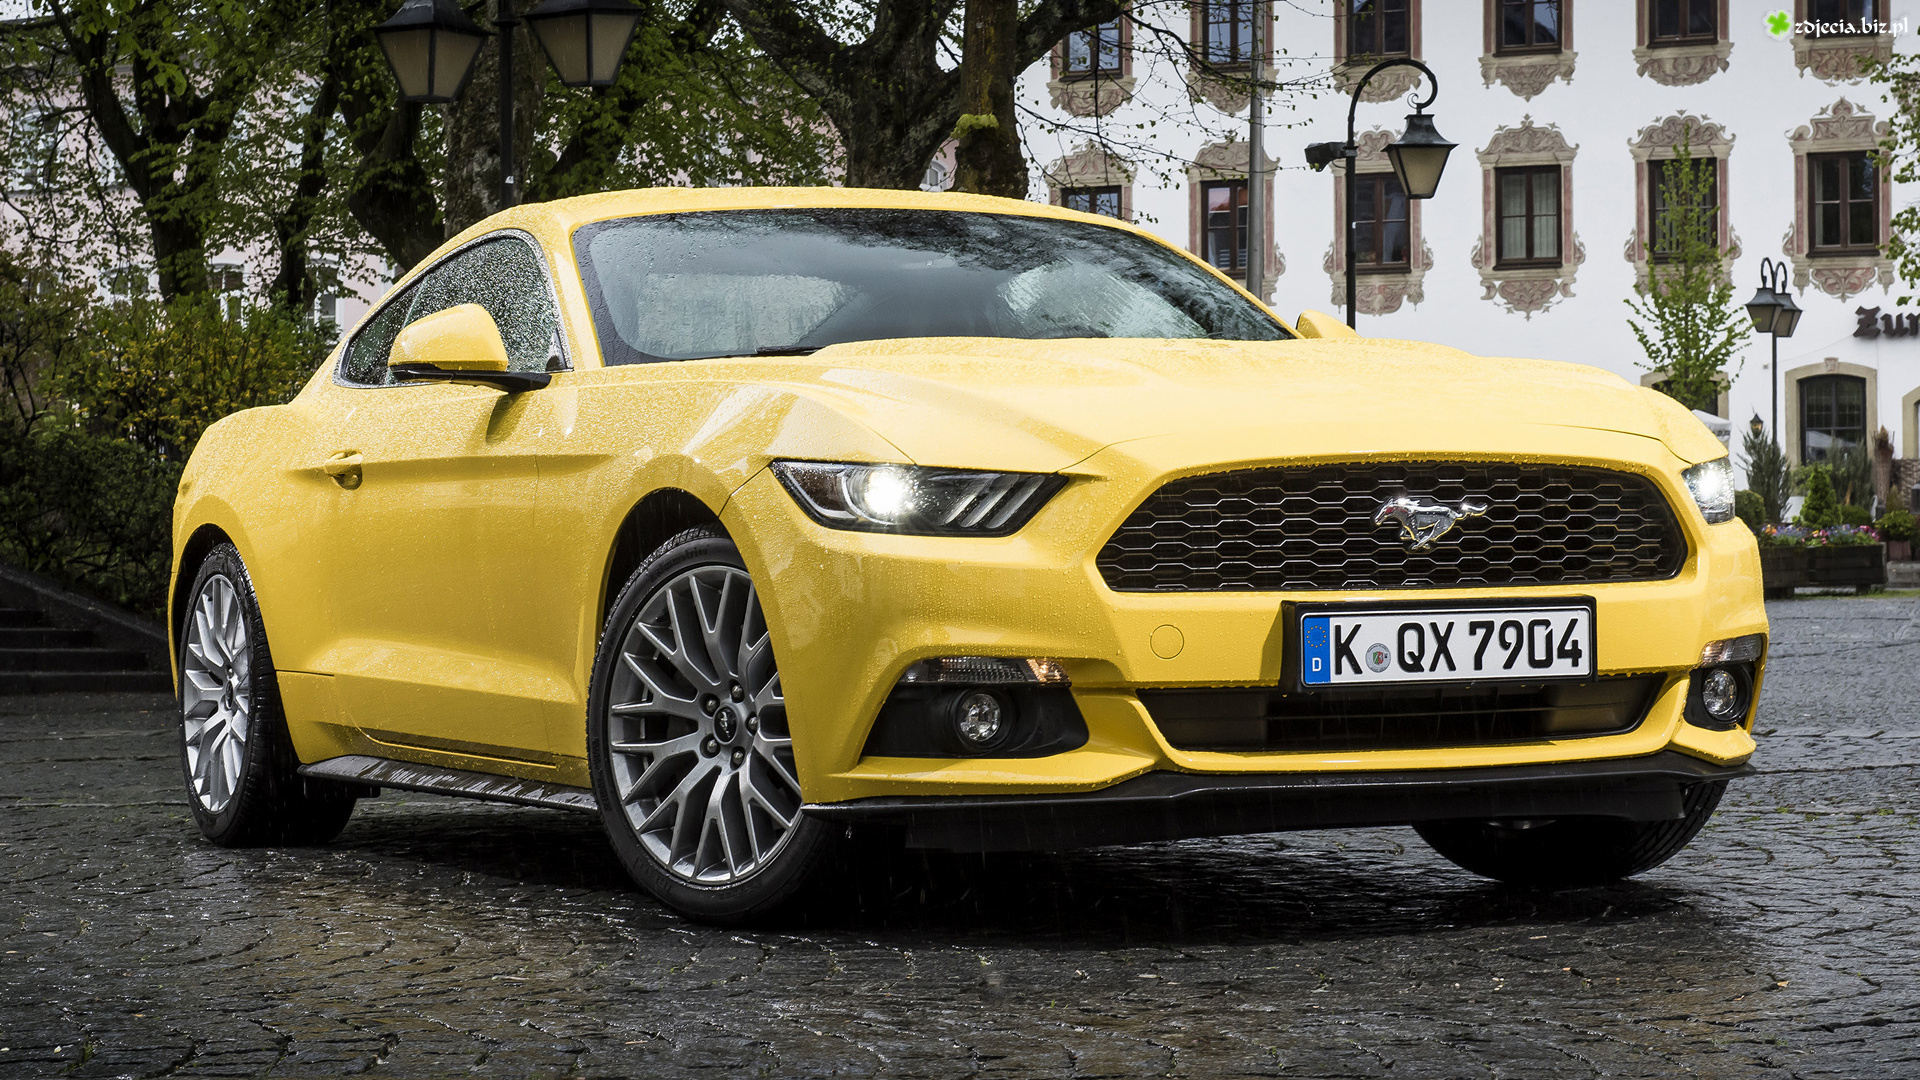 Żółty, Ford Mustang, Coupe